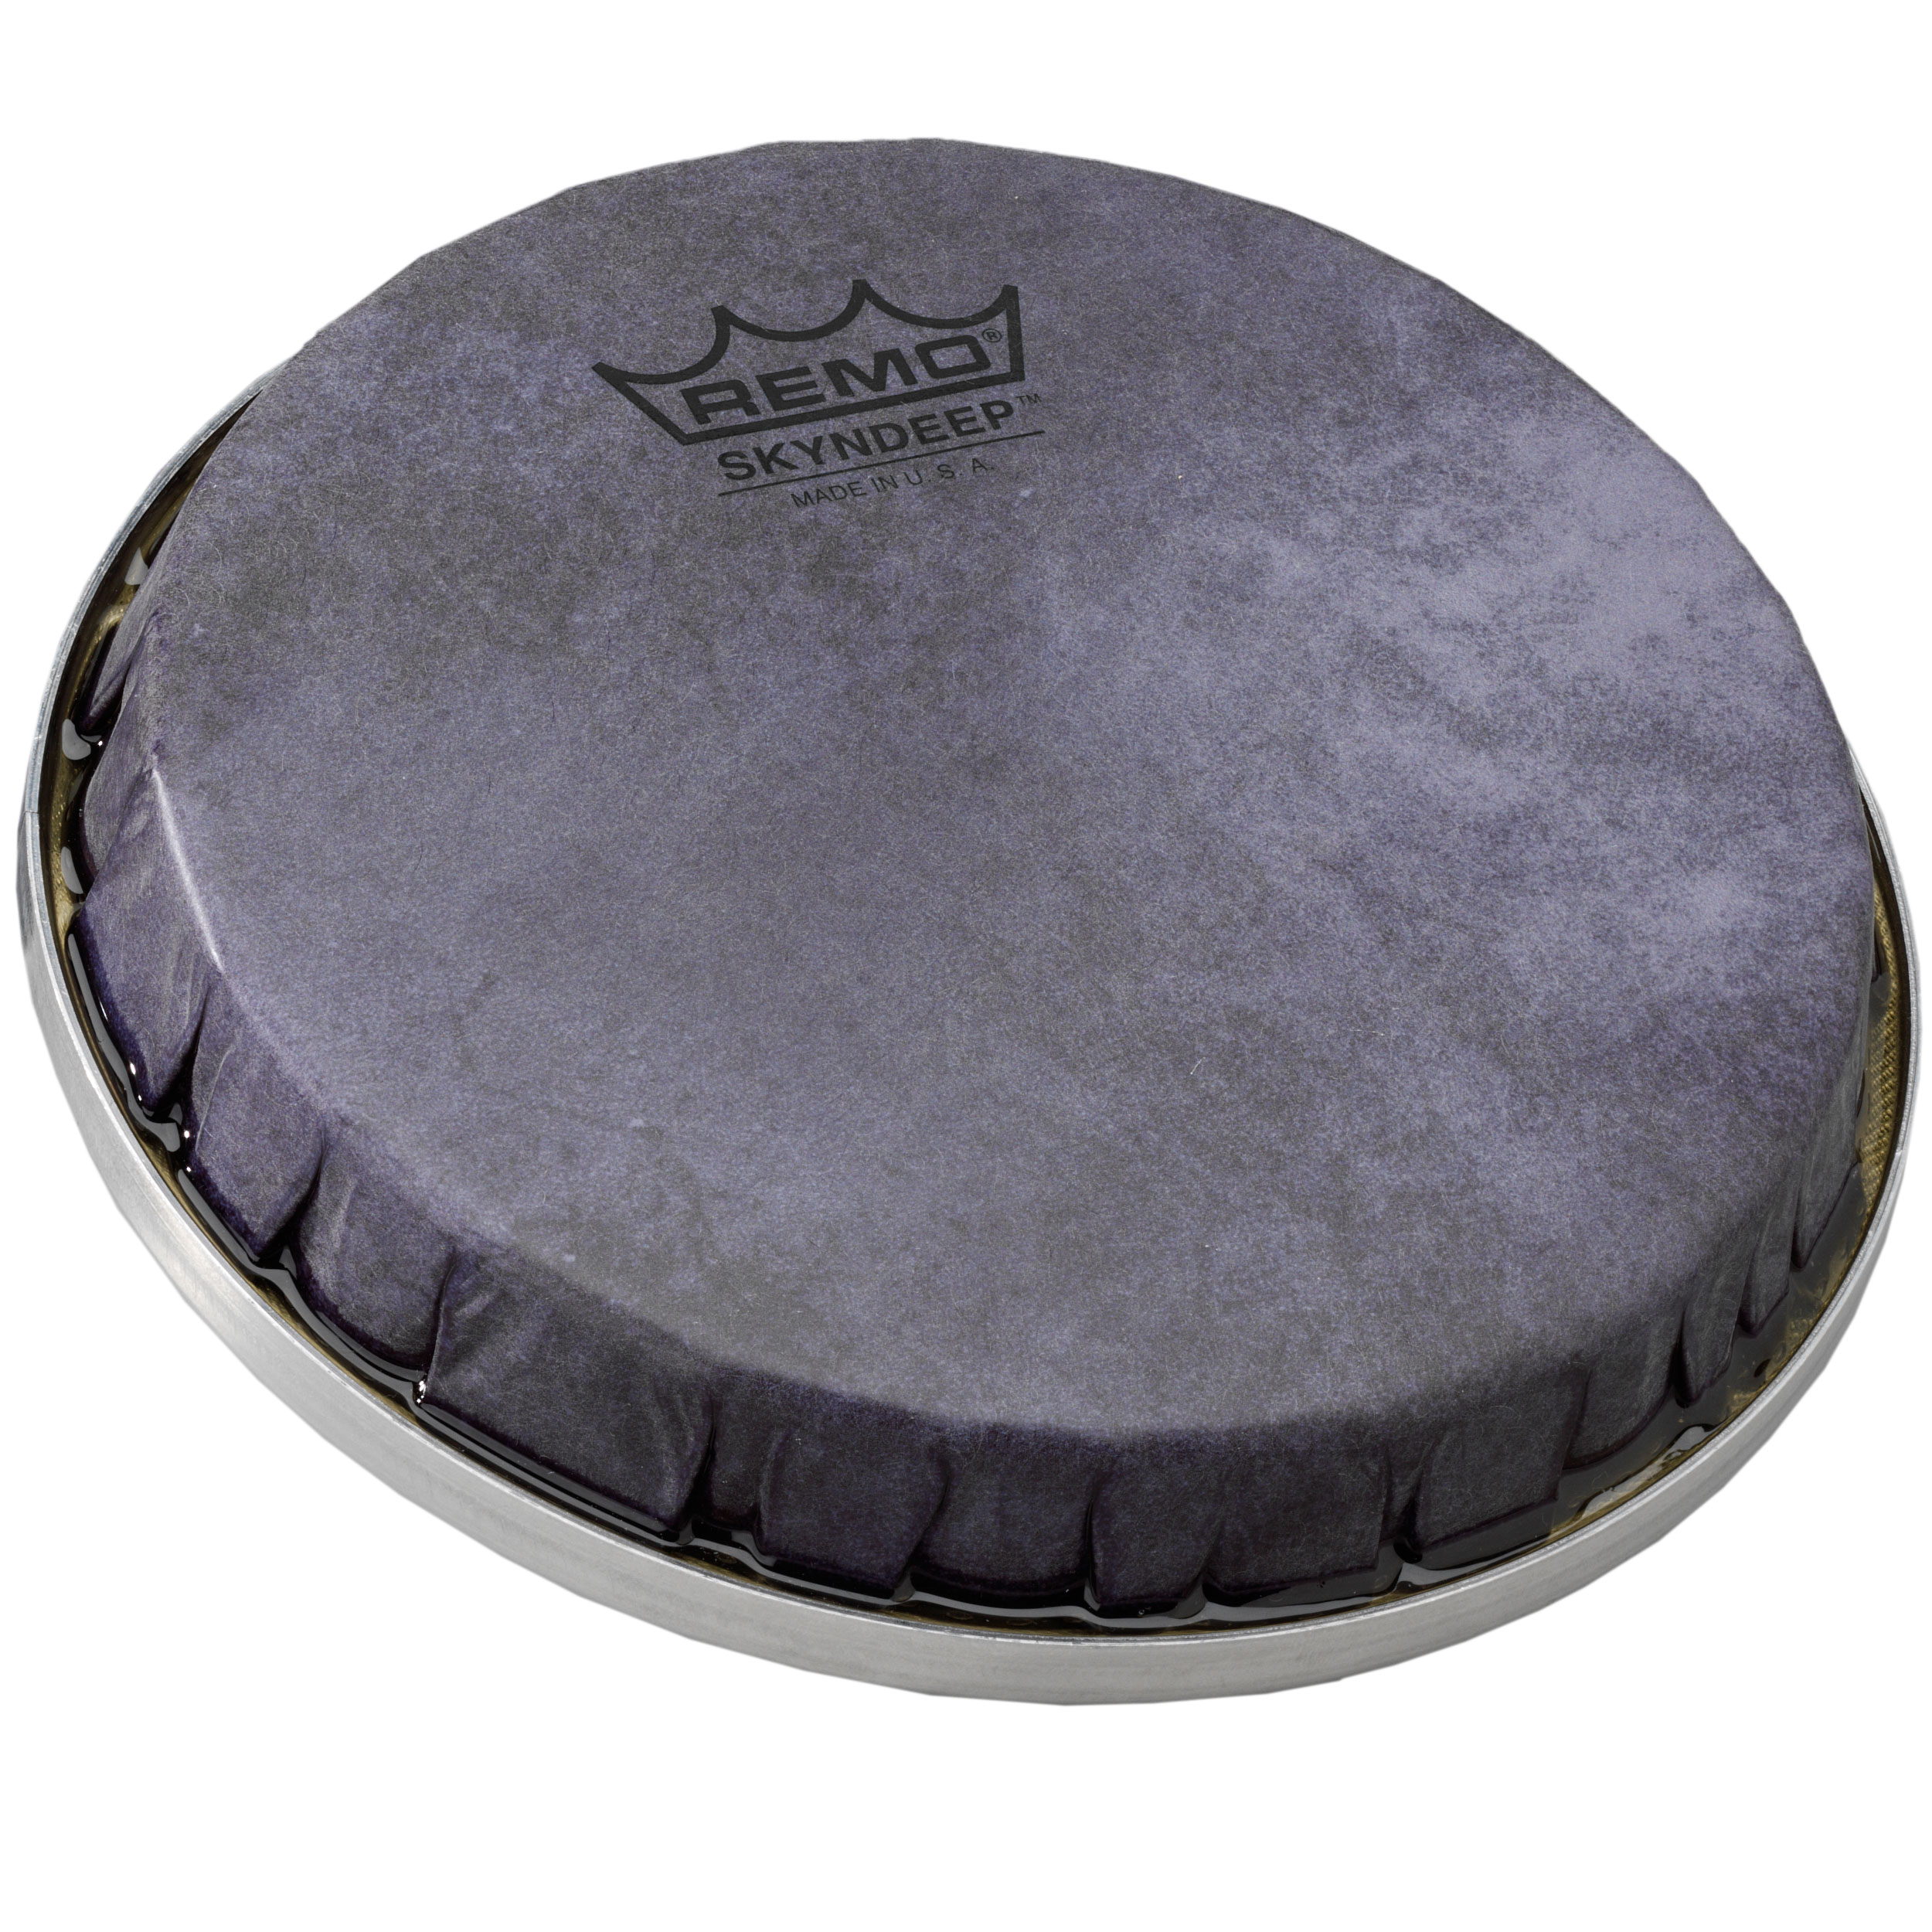 "Remo 8.8"" R-Series Skyndeep Bongo Drum Head with Black Calfskin Graphic"